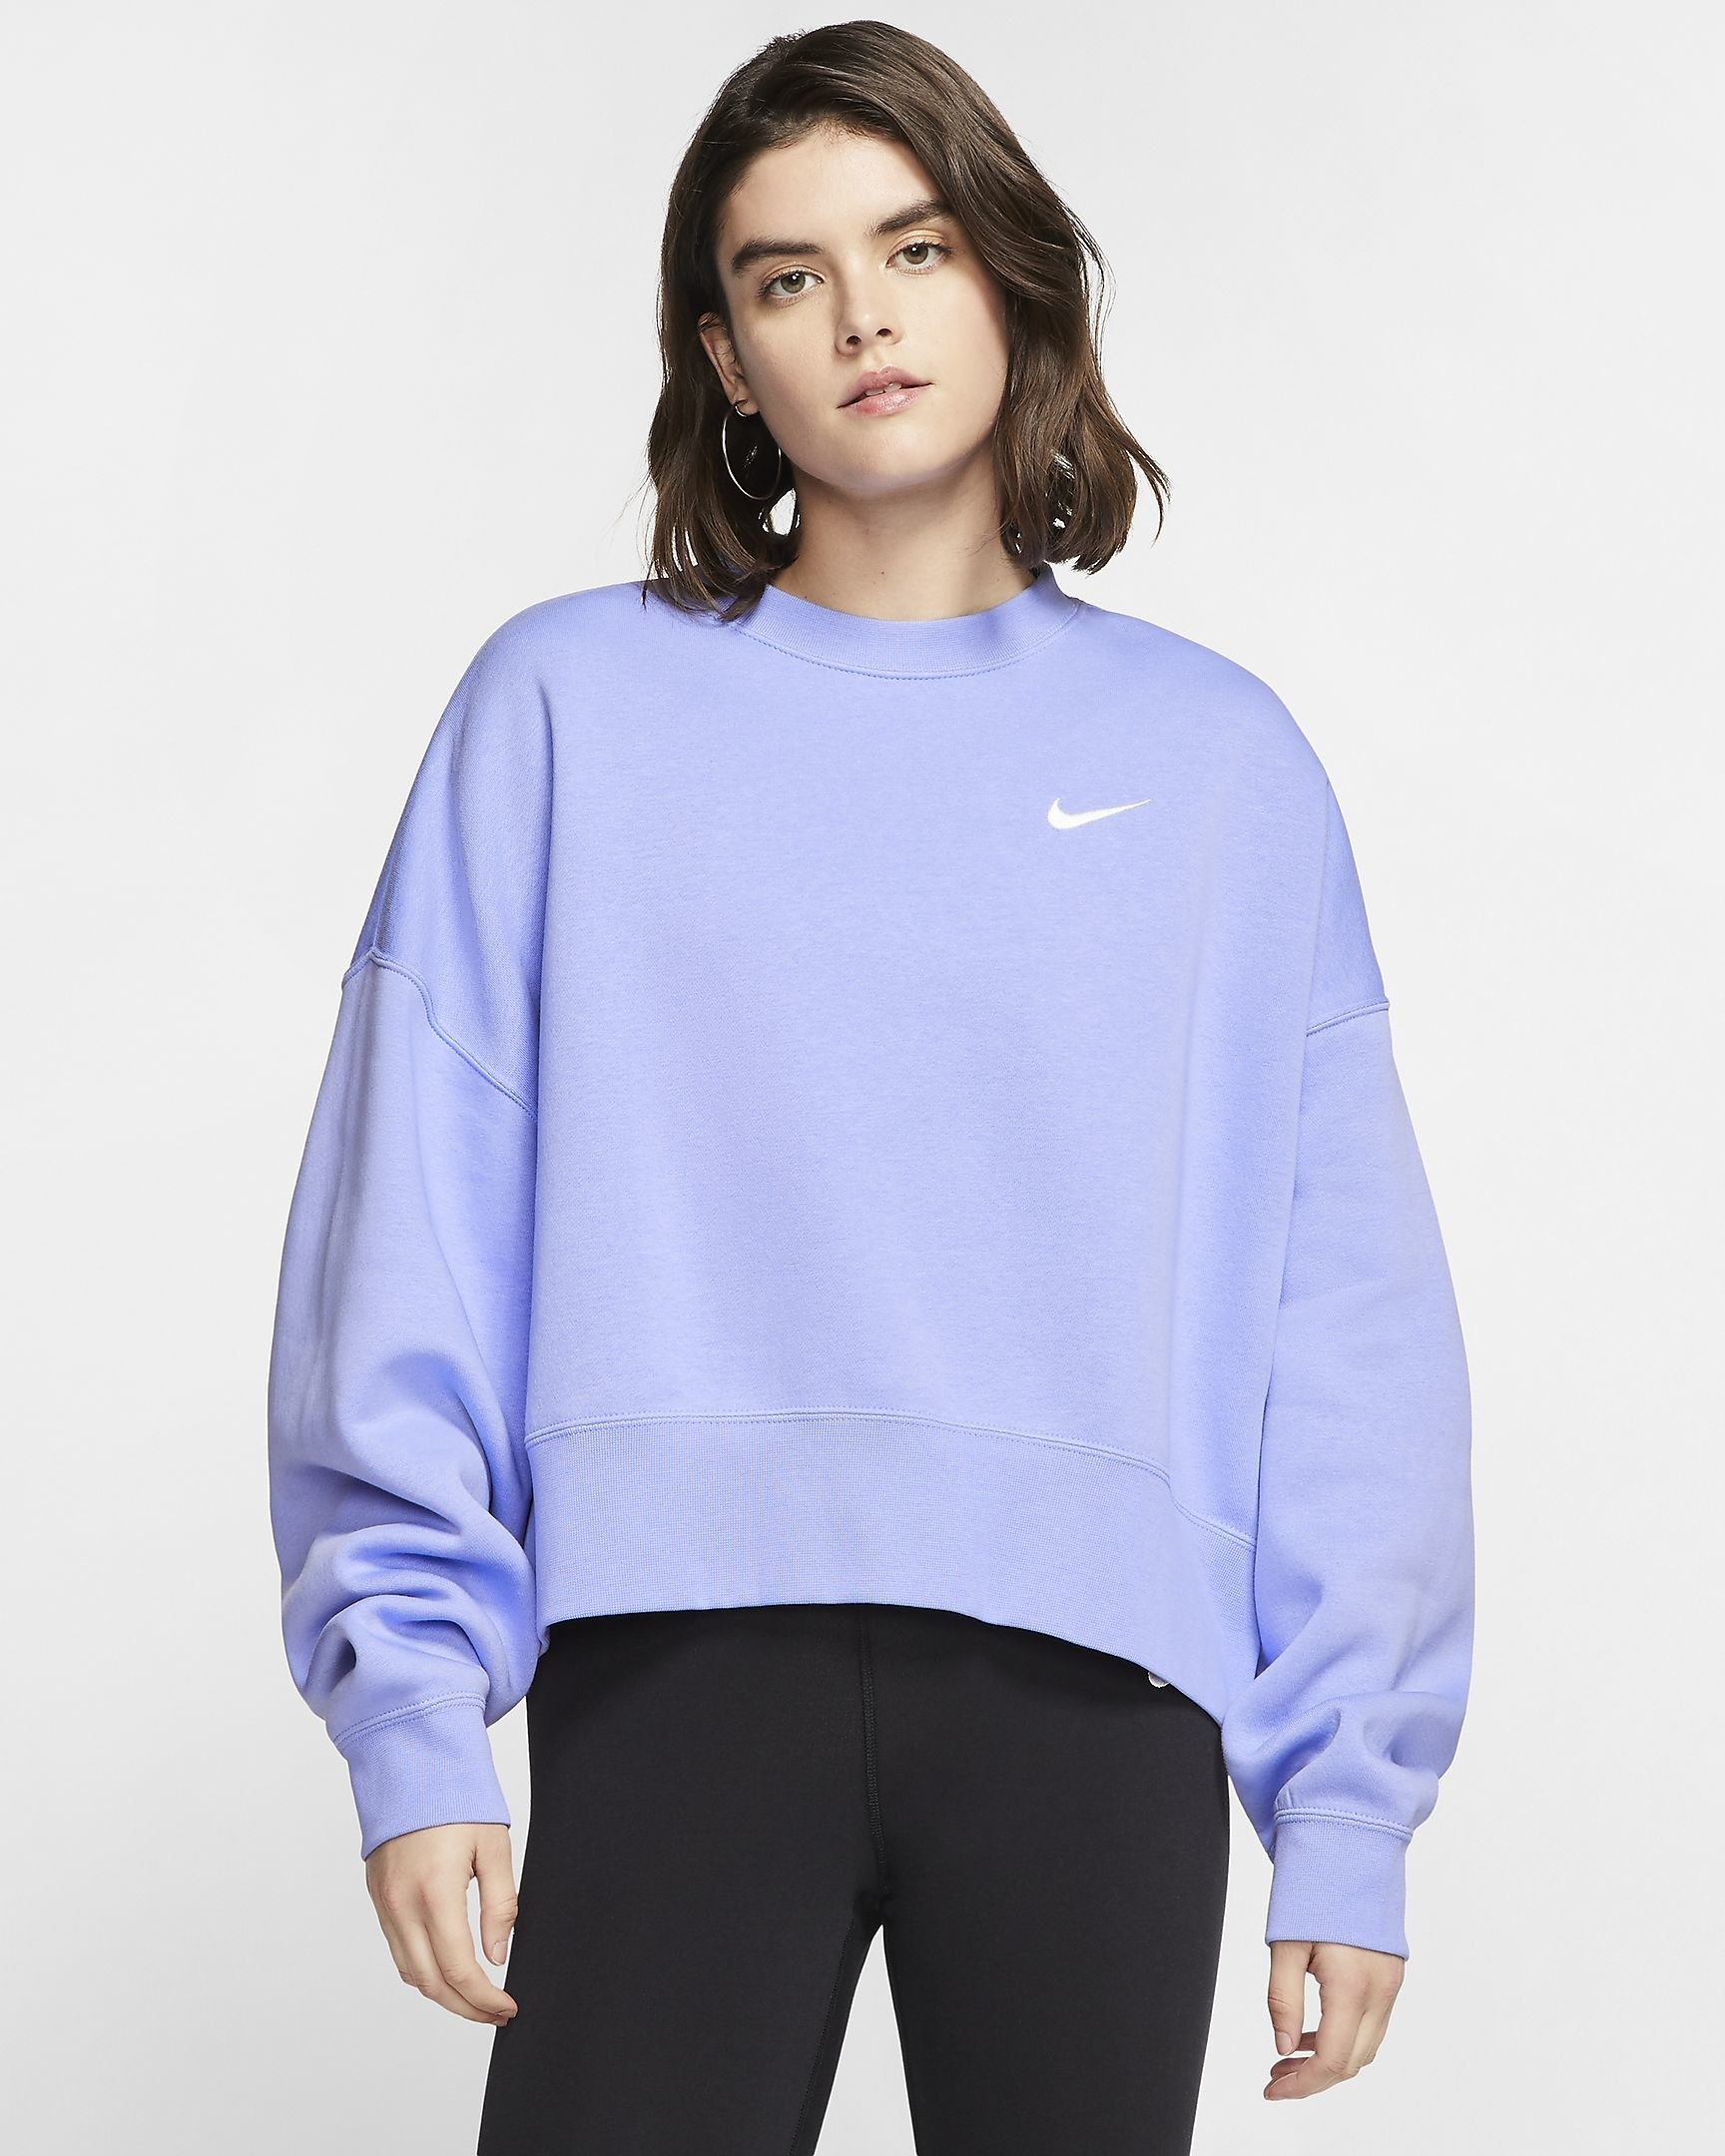 Model wearing the crewneck sweatshirt in the color light thistle, featuring a